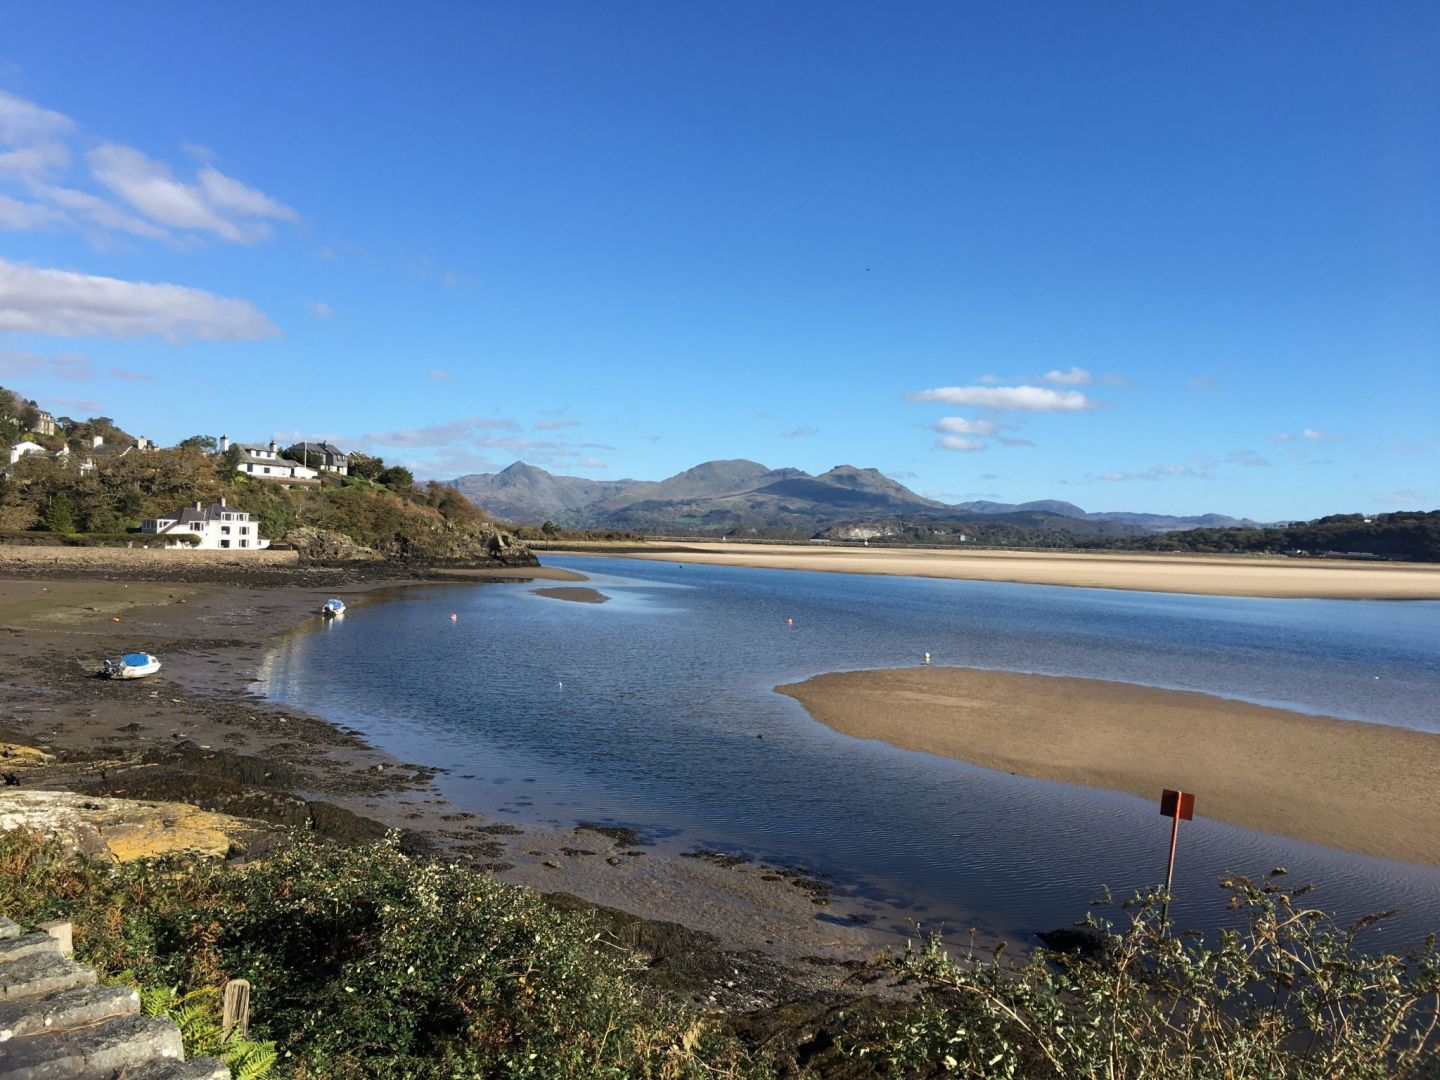 Day trip around beautiful North Wales